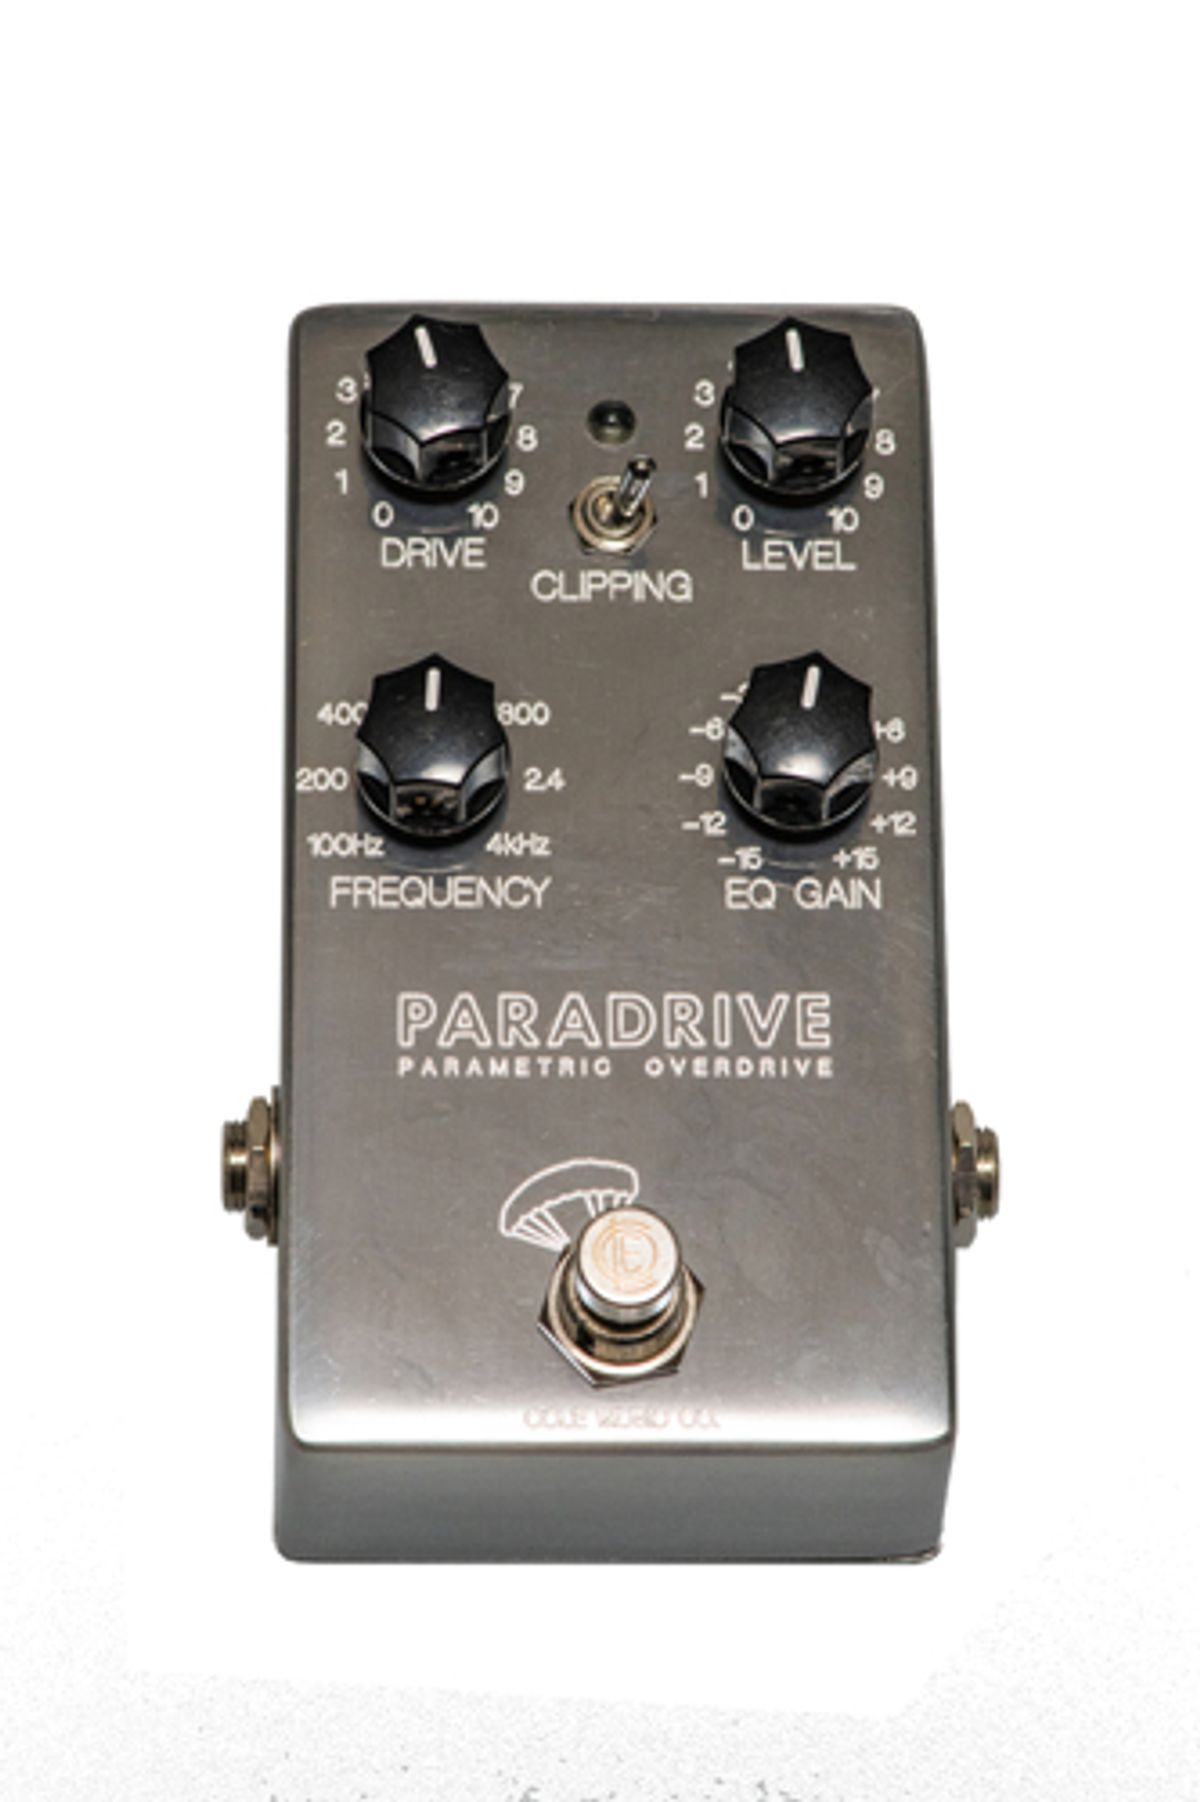 Cole Music Releases the Paradrive Parametric Overdrive